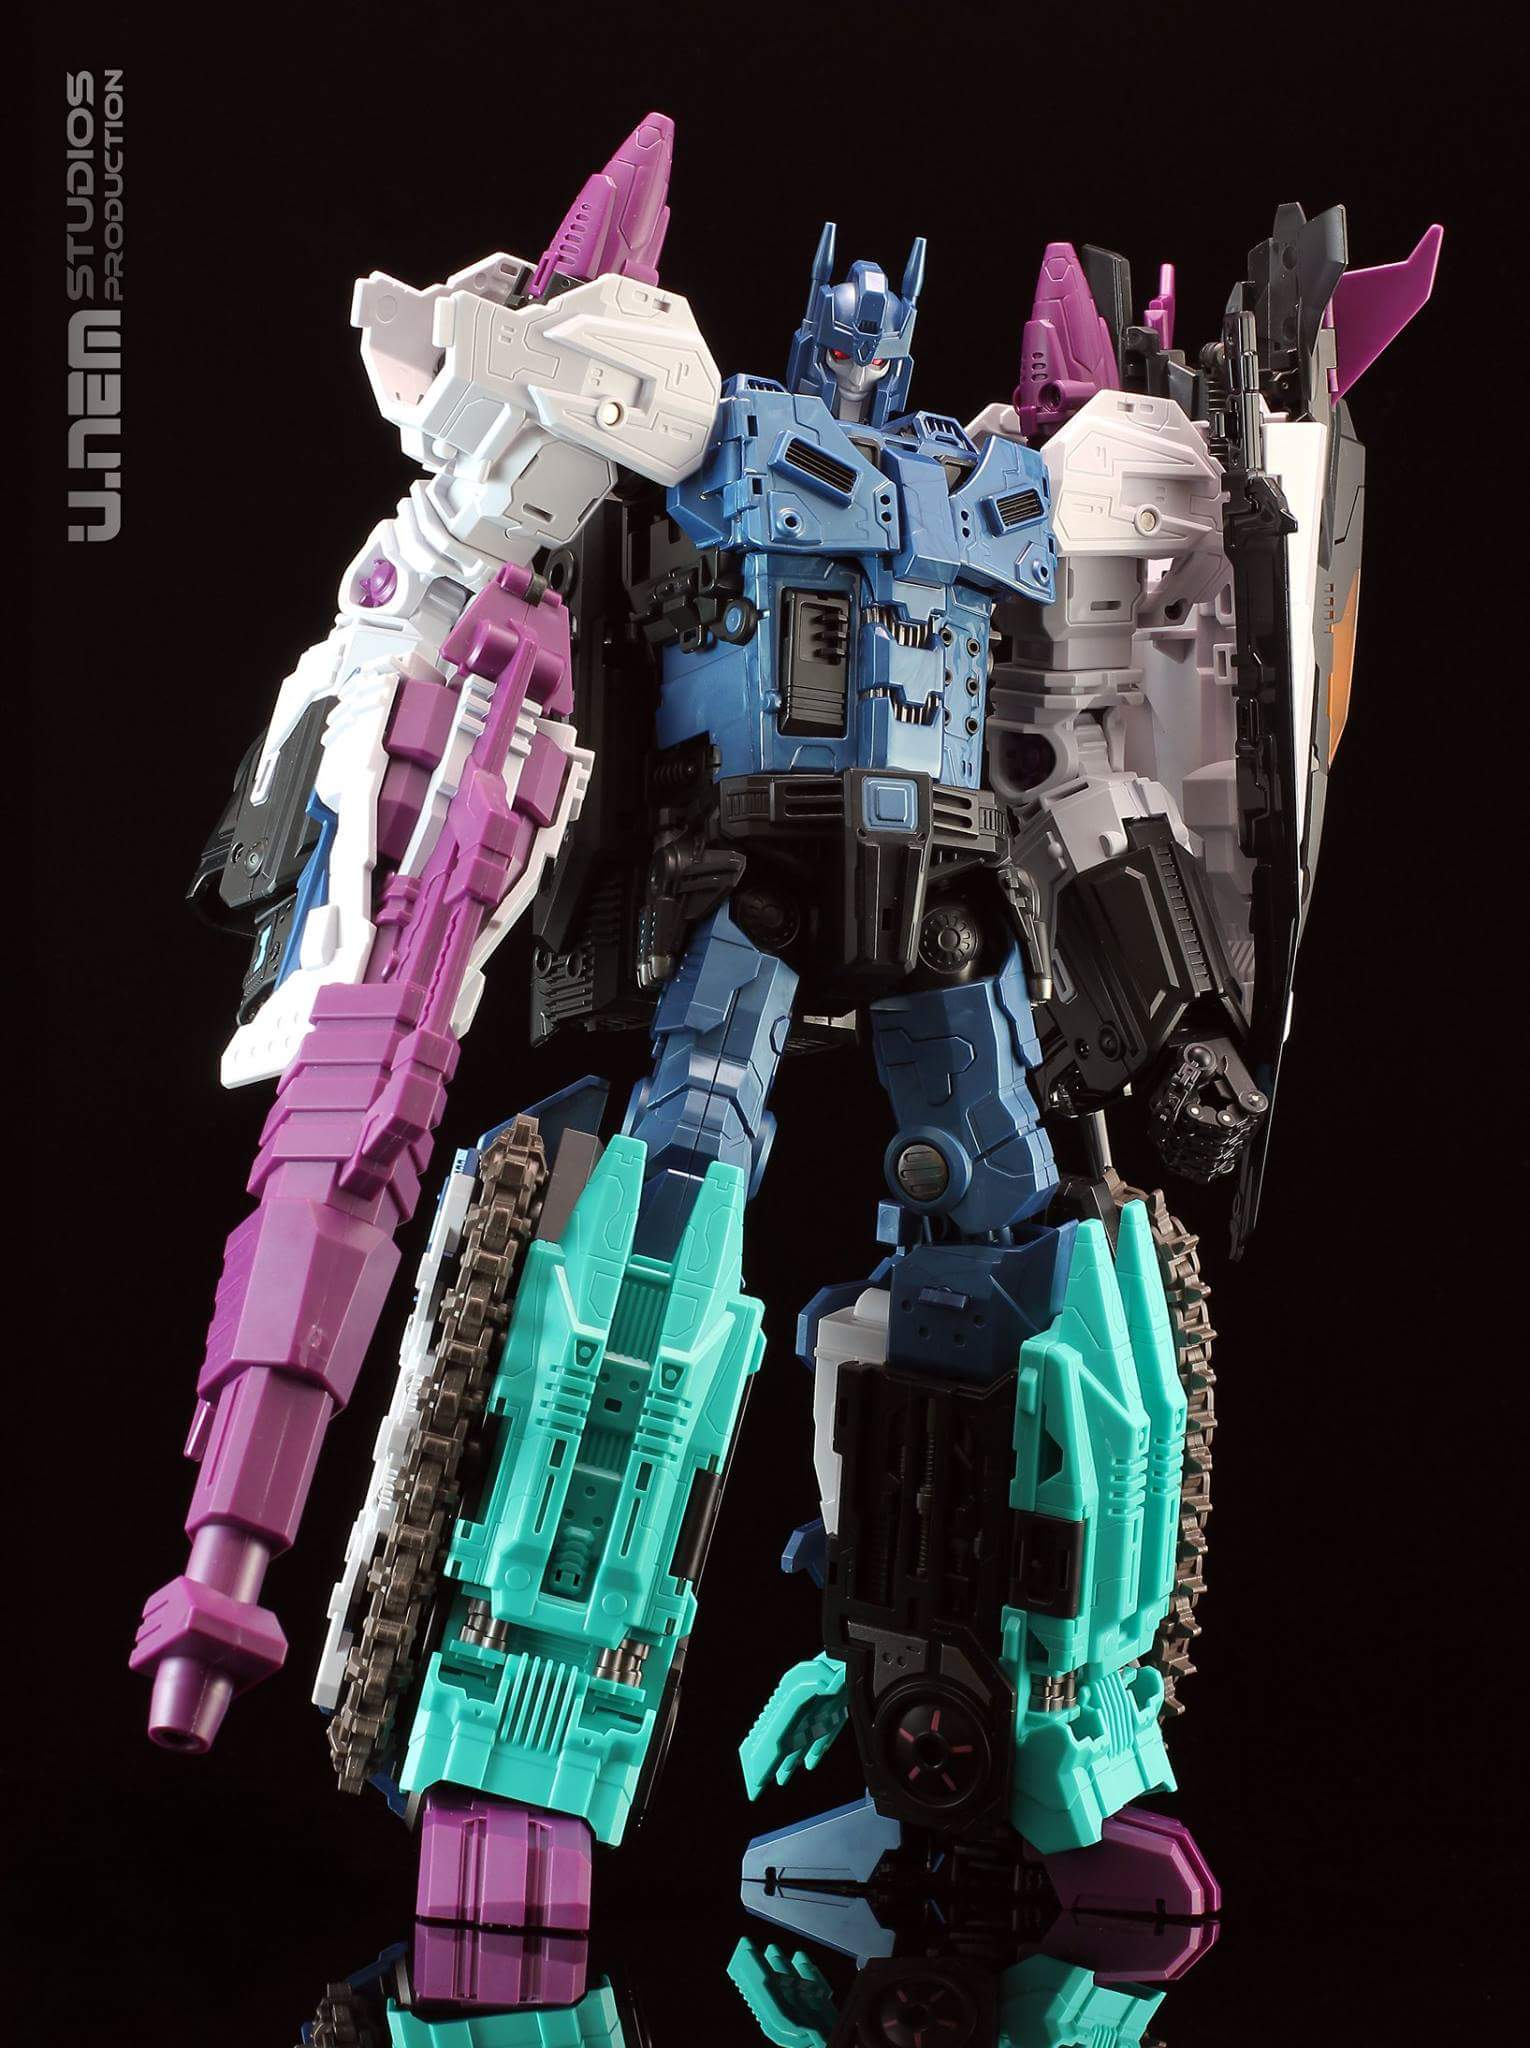 [Mastermind Creations] Produit Tiers - R-17 Carnifex - aka Overlord (TF Masterforce) - Page 3 O0GcNZtL